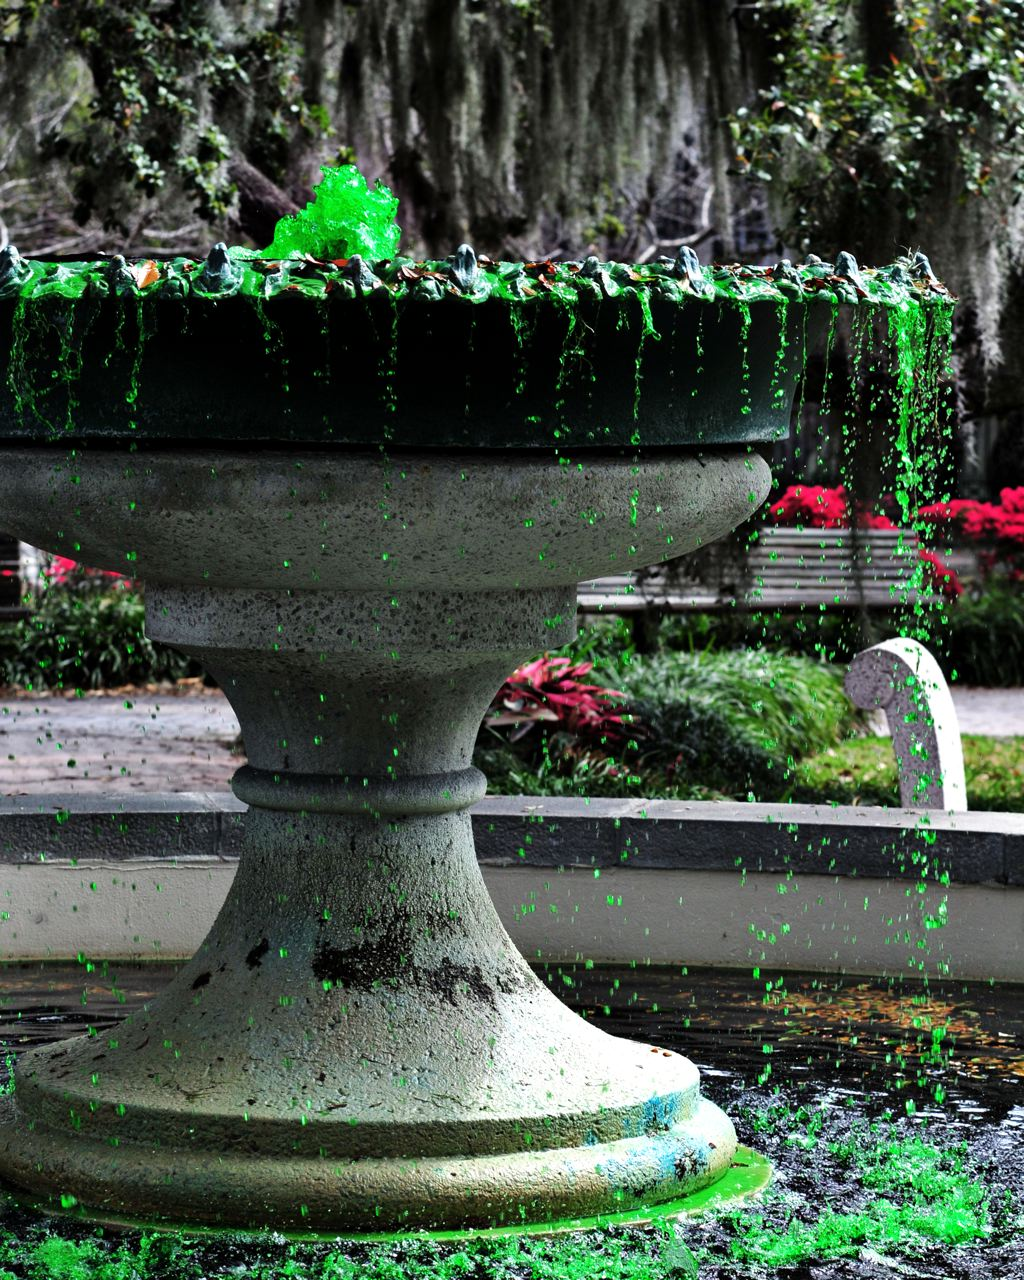 from the 188th St Patricks Day Celebration here in Savannah 1024x1280